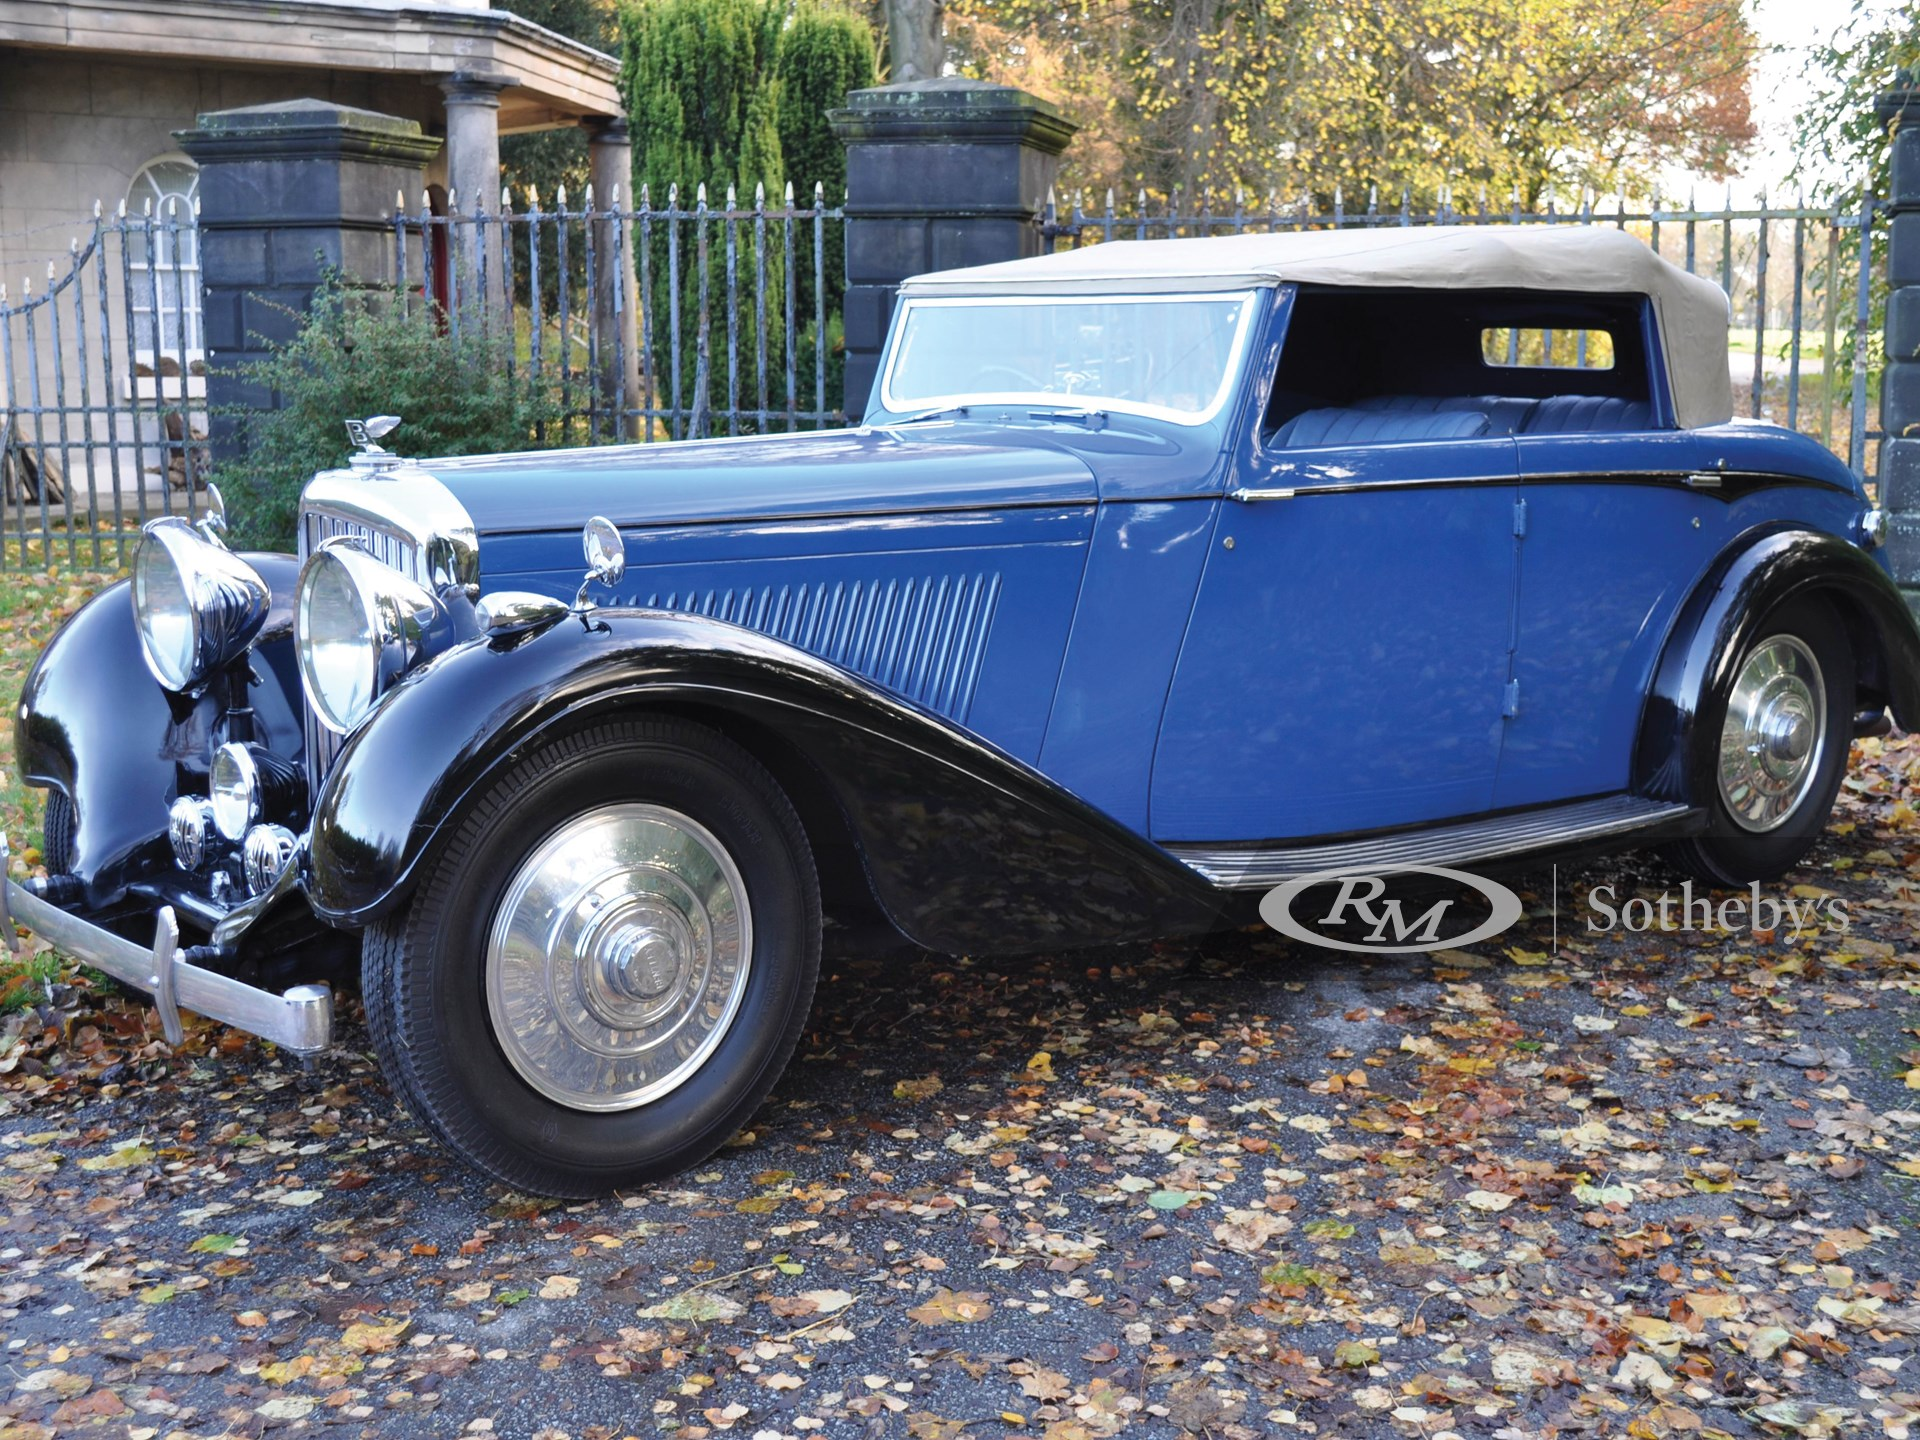 1937 Bentley 4¼ Litre Disappearing Hood Sports Tourer by Hooper